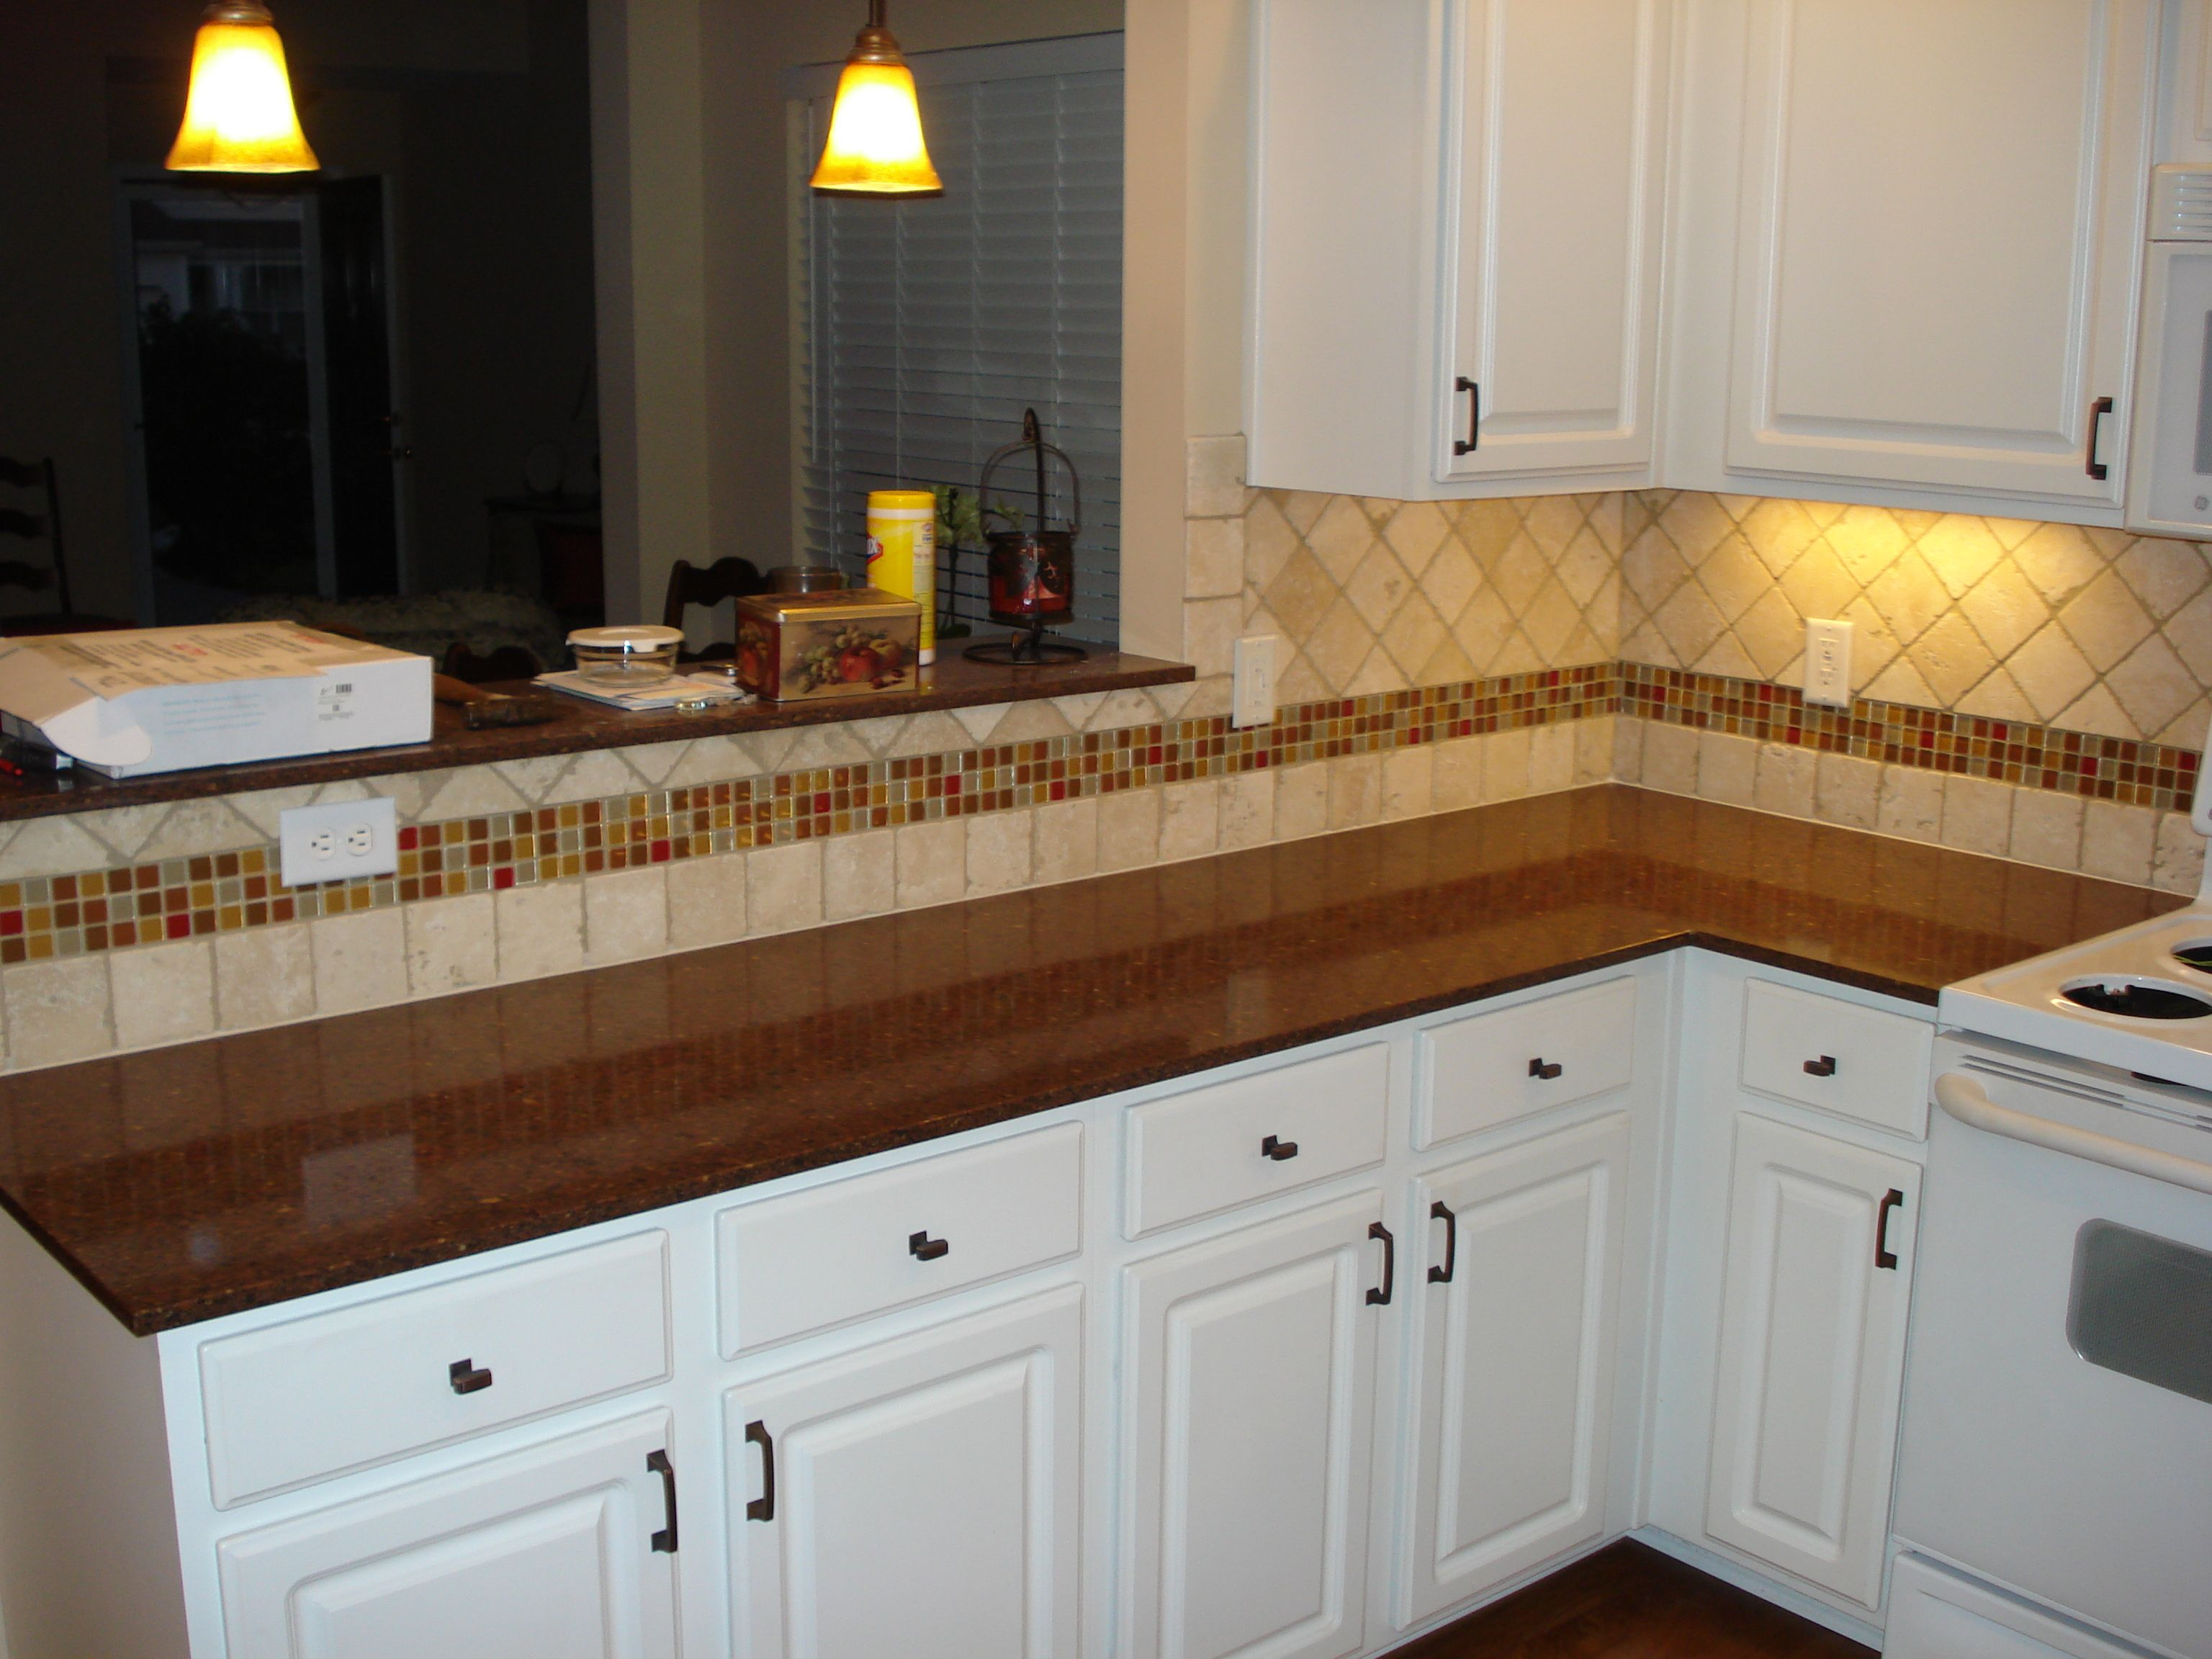 Backsplash Accent Ideas Tumbled Marble Backsplash With Multi Colored Glass Accent